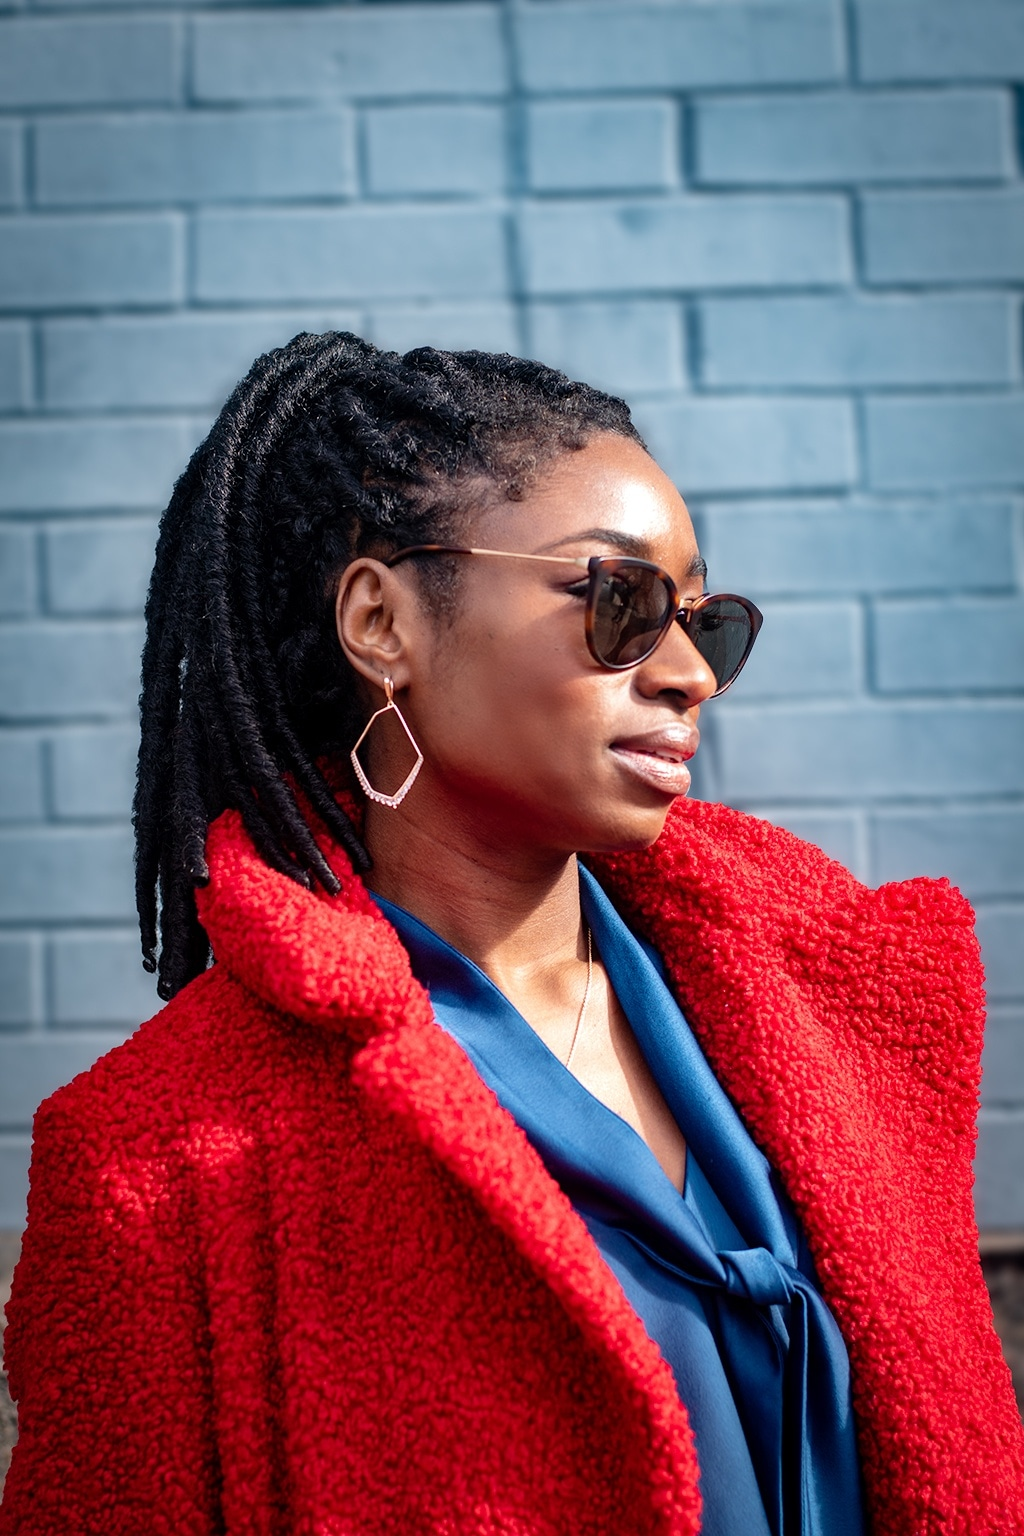 NYFW AW19 Street Style: Woman with dark brown faux locs styled into a high ponytail, wearing sunglasses with ted coat and blue blouse underneath